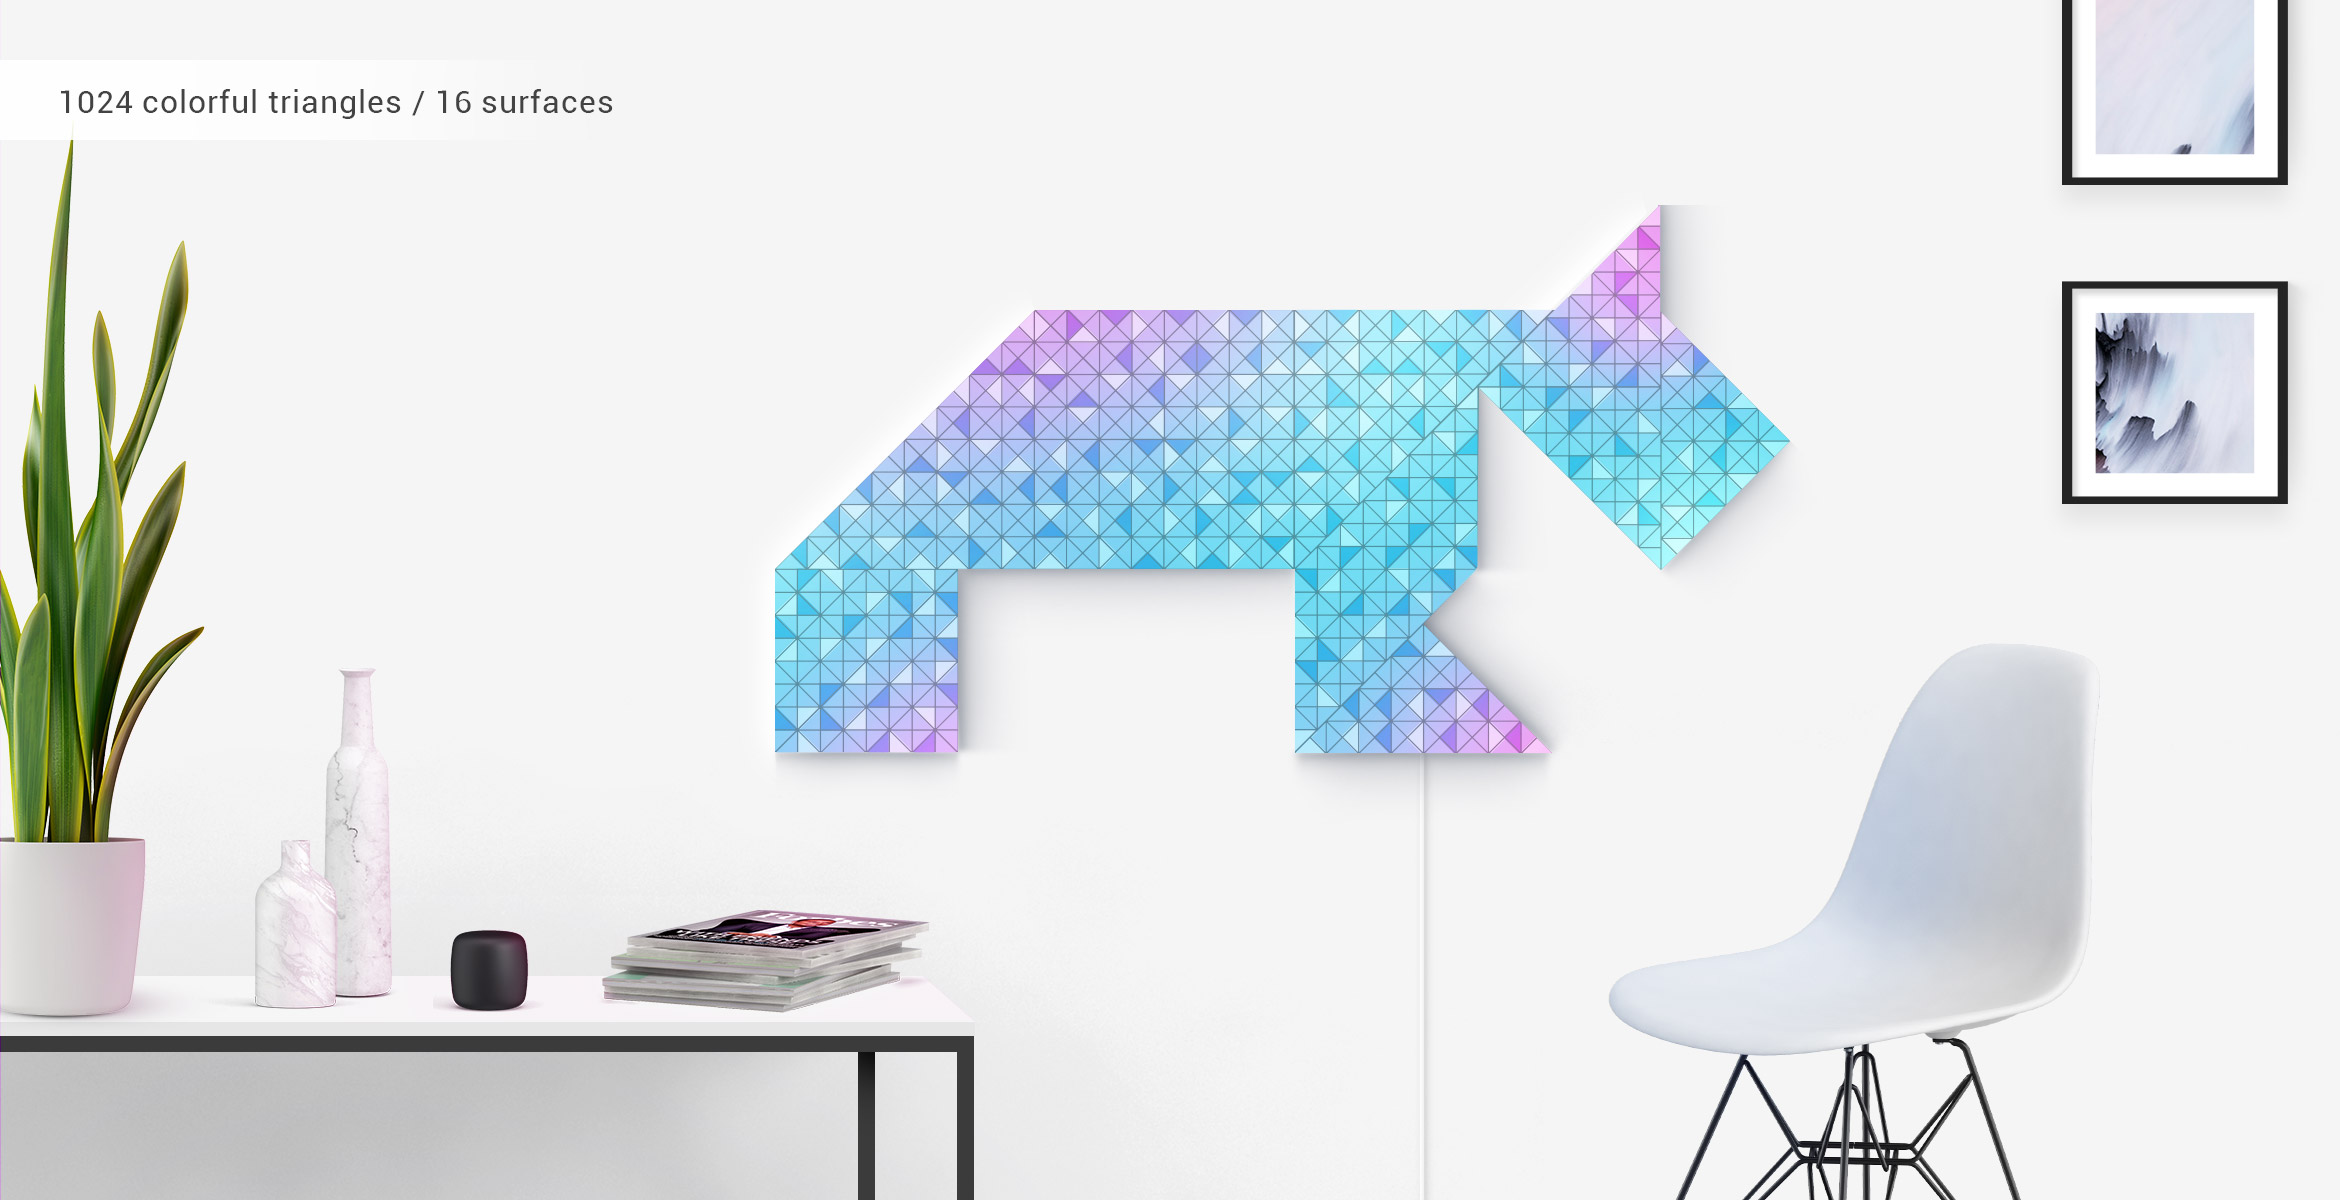 Dog shape, assembled from 12 LaMetric SKY smart light surfaces, in impressive Tangram art style, complements the room interior